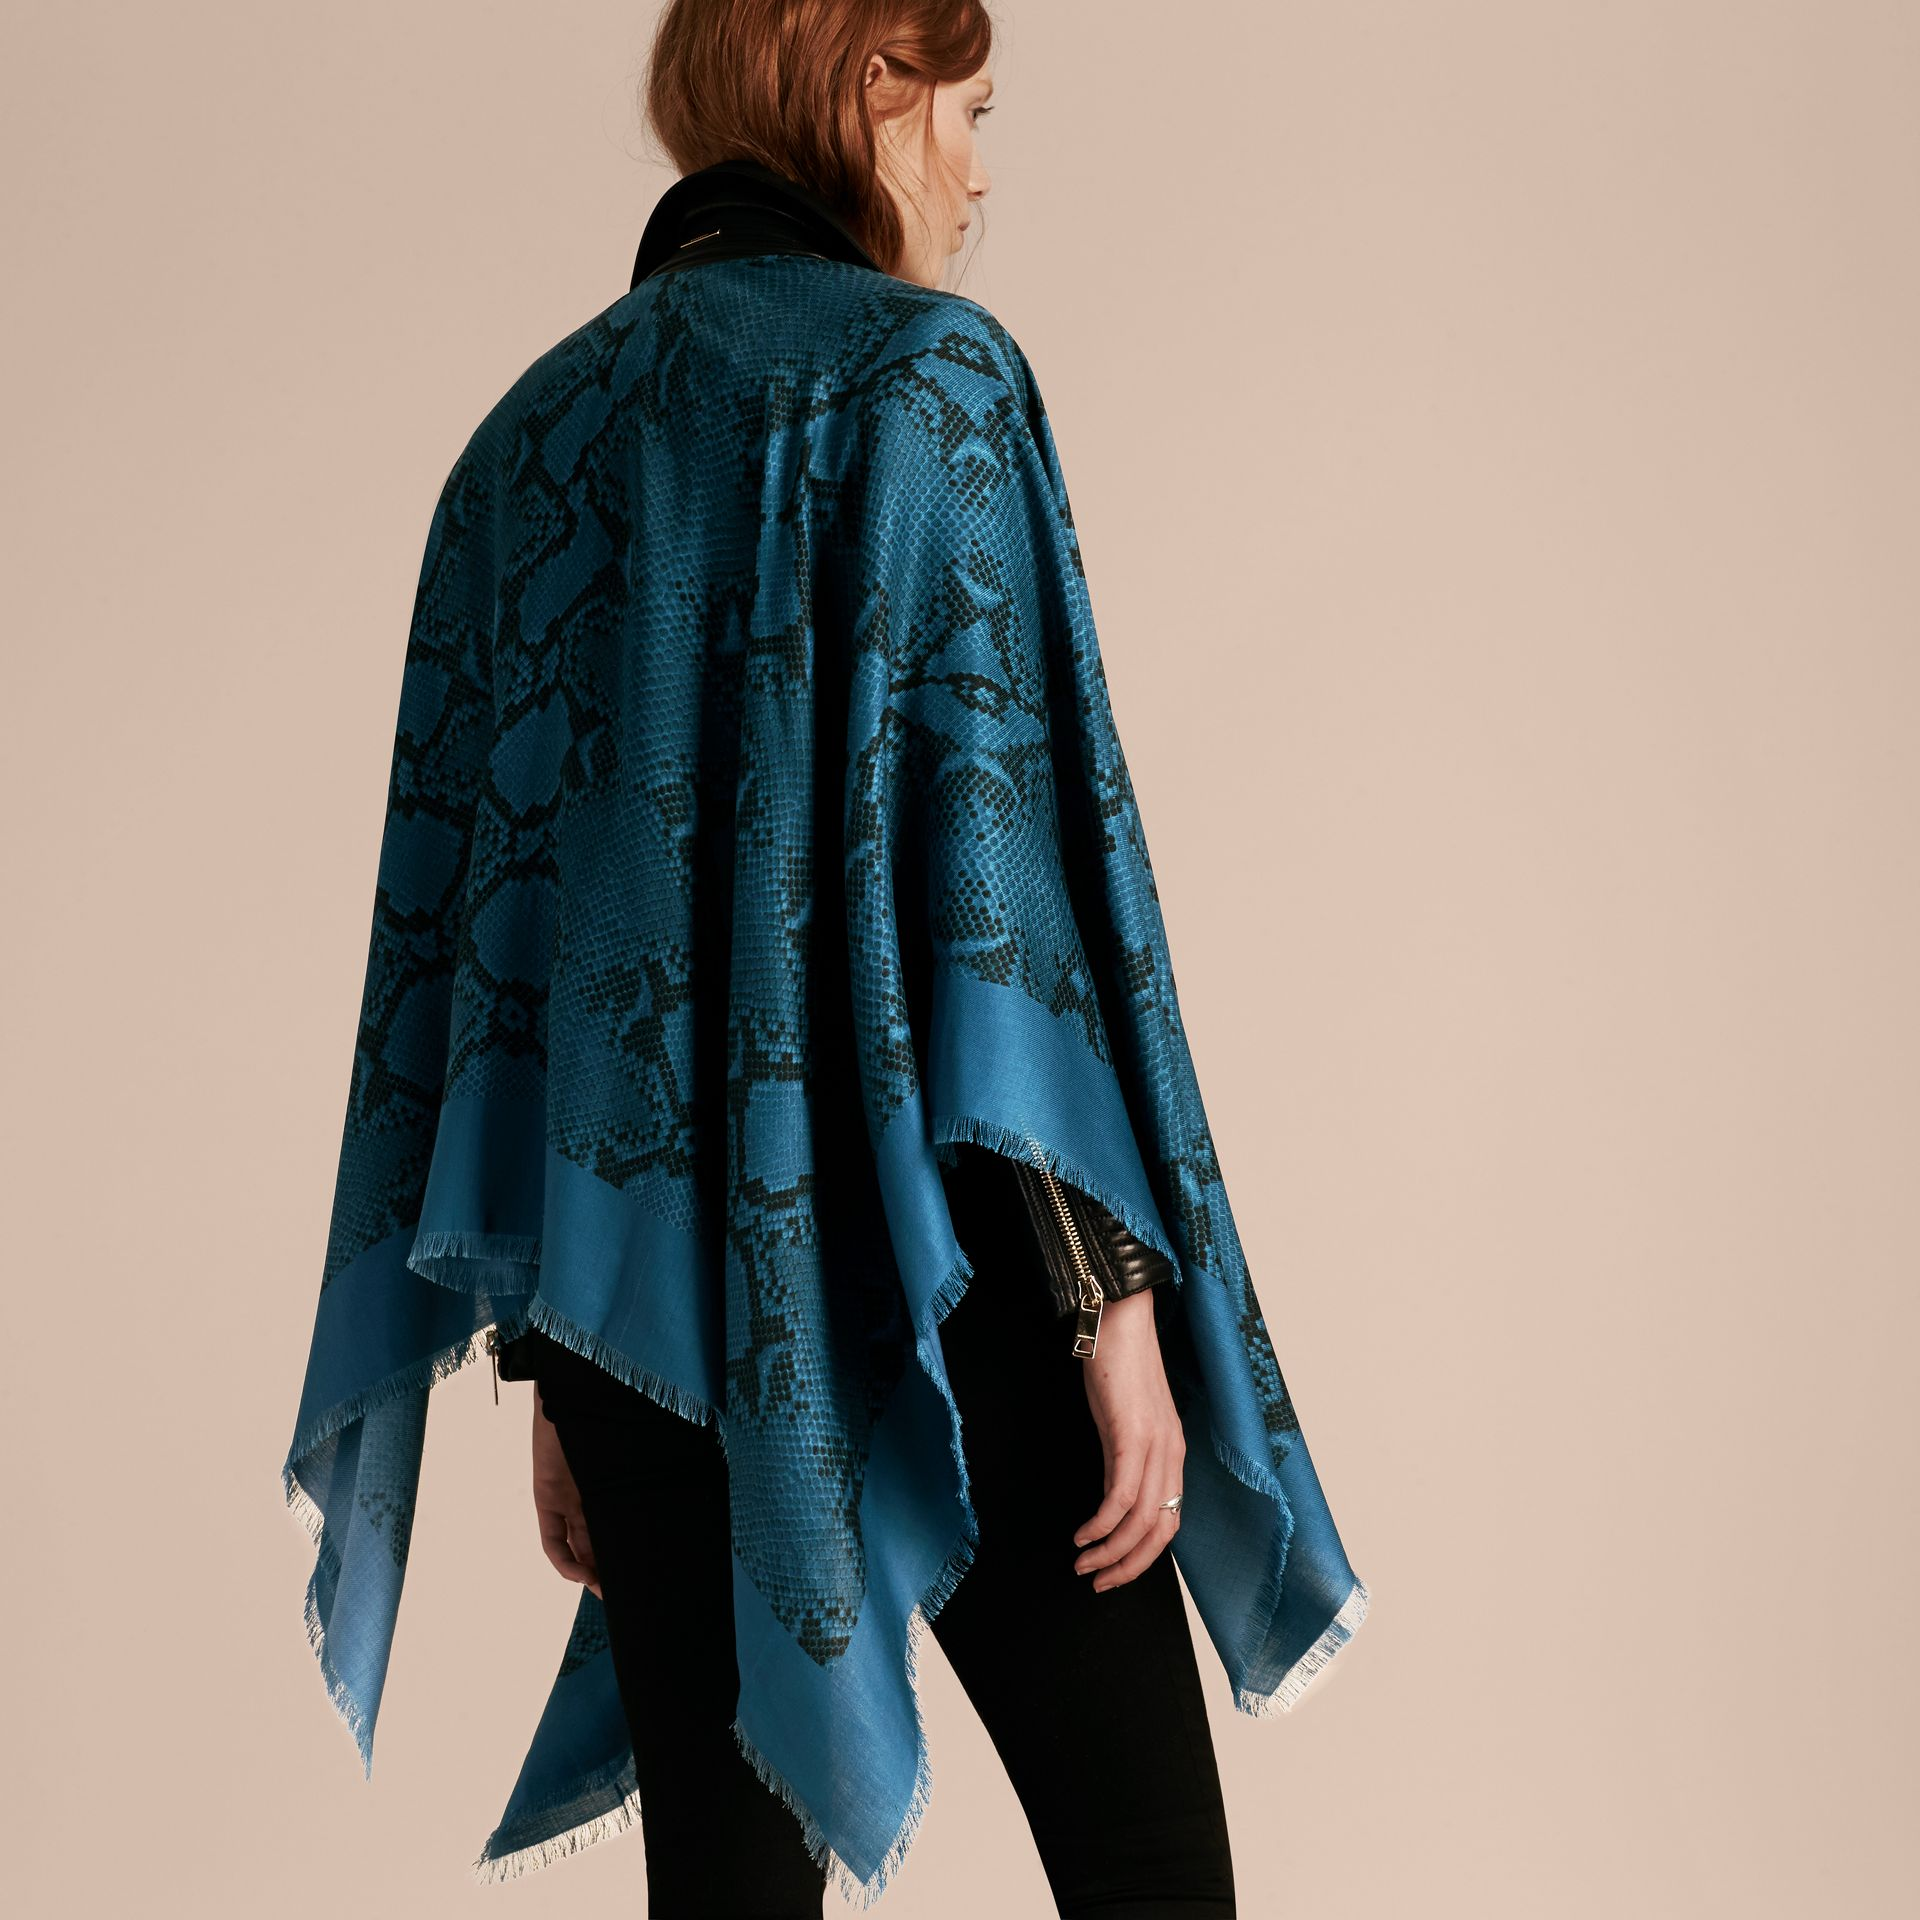 Mineral blue Lightweight Python Print Wool Cashmere Silk Poncho Mineral Blue - gallery image 6